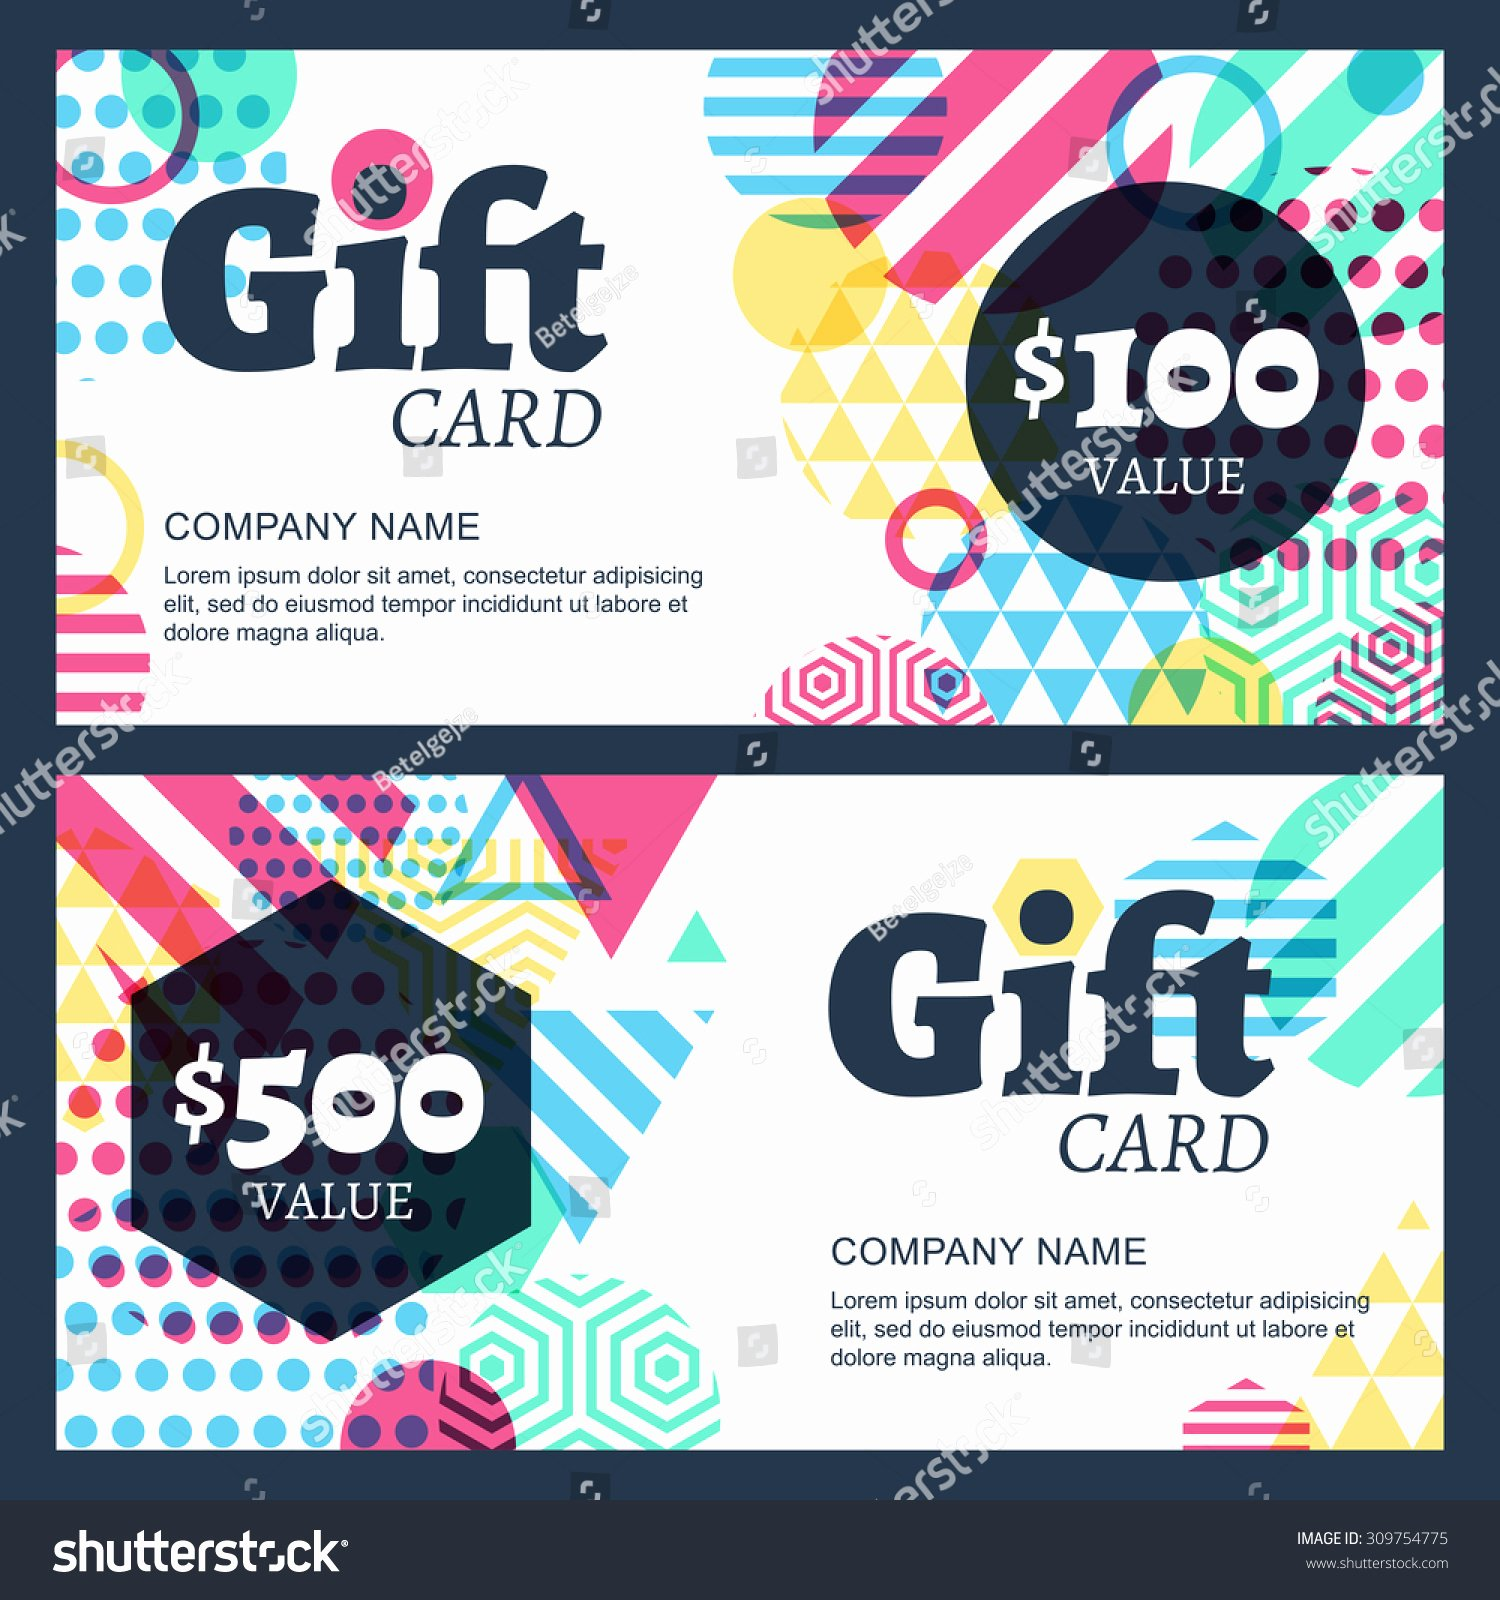 Chinese Restaurant Gift Certificate Template Elegant Vector Creative Gift Voucher Card Background Stock Vector